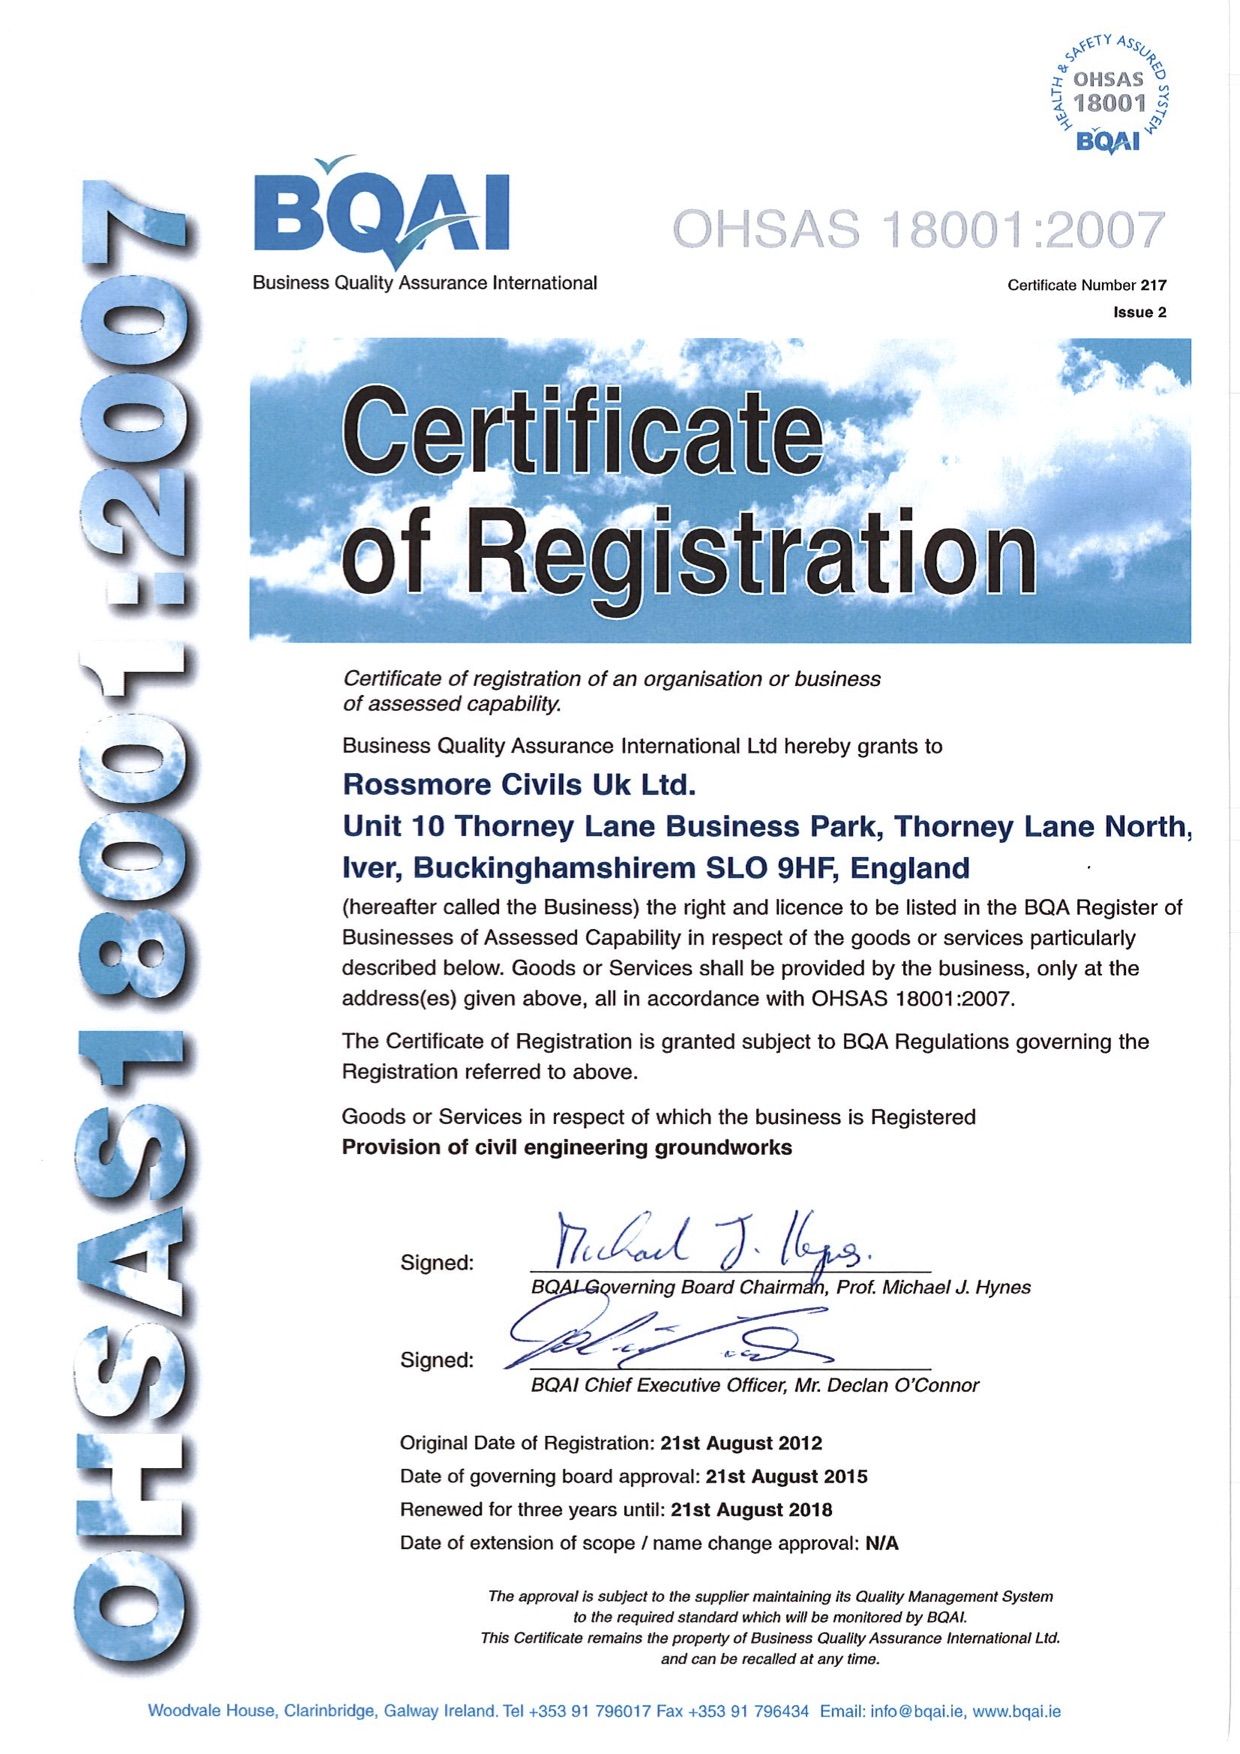 howley contracts rossmore civils uk ireland ohsas 18001 cert